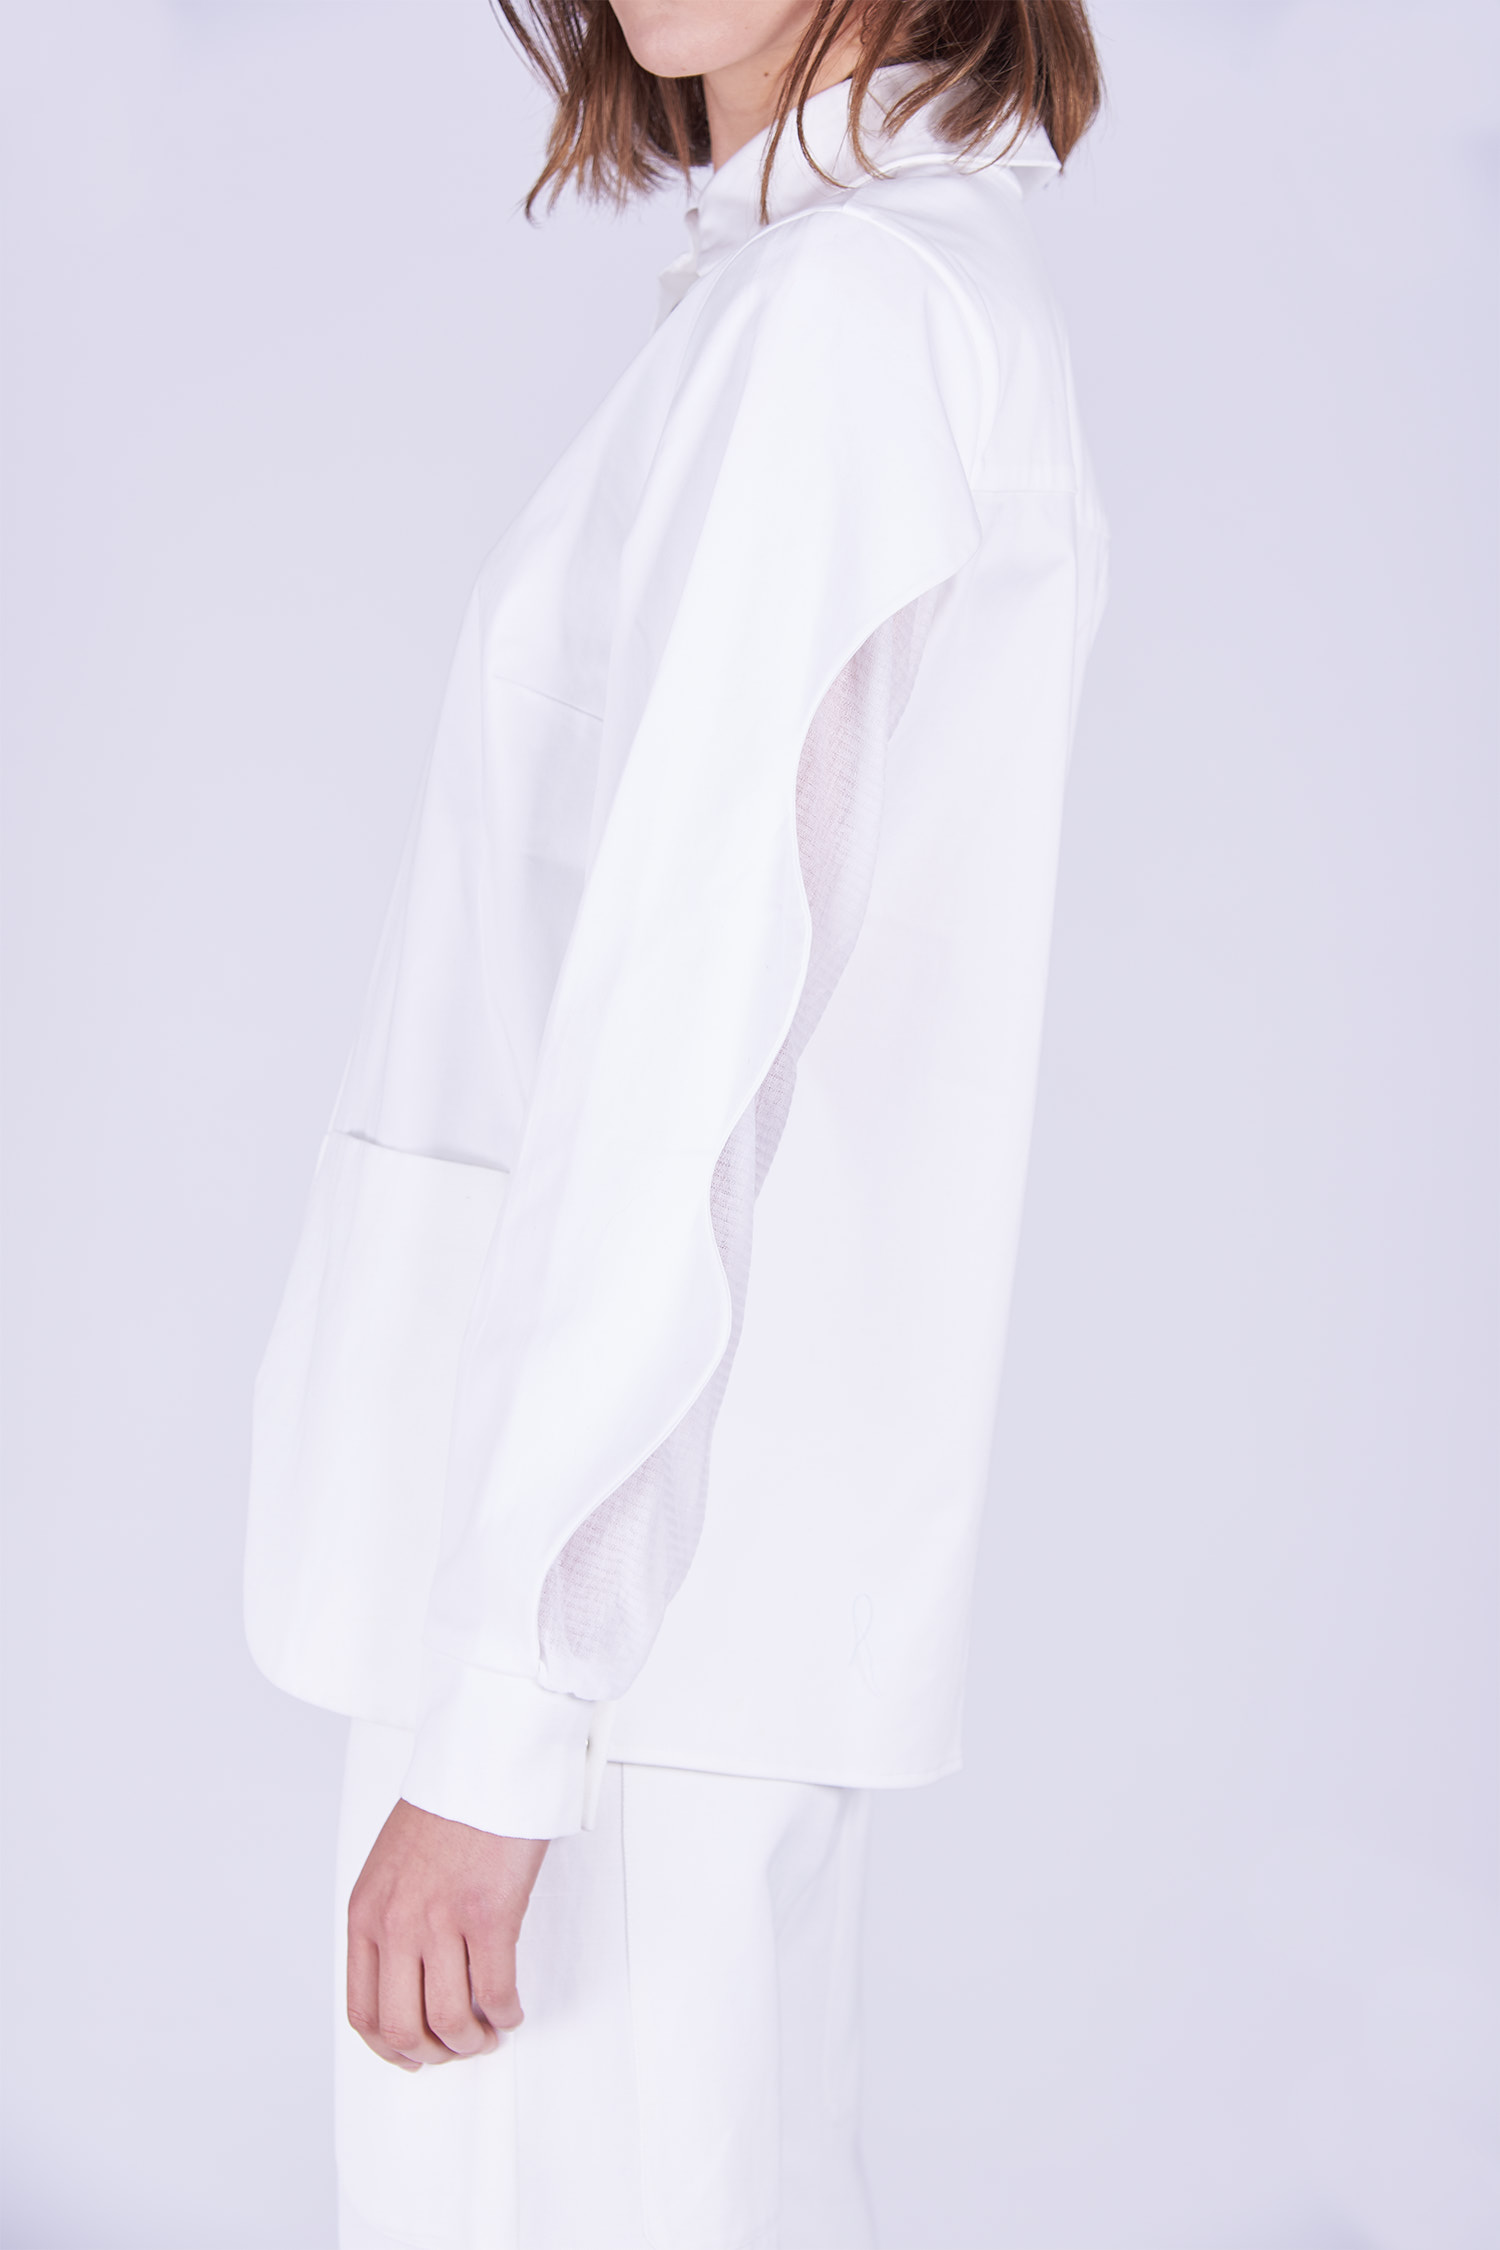 Acephala Ps2020 White Shirt White Trousers Detail